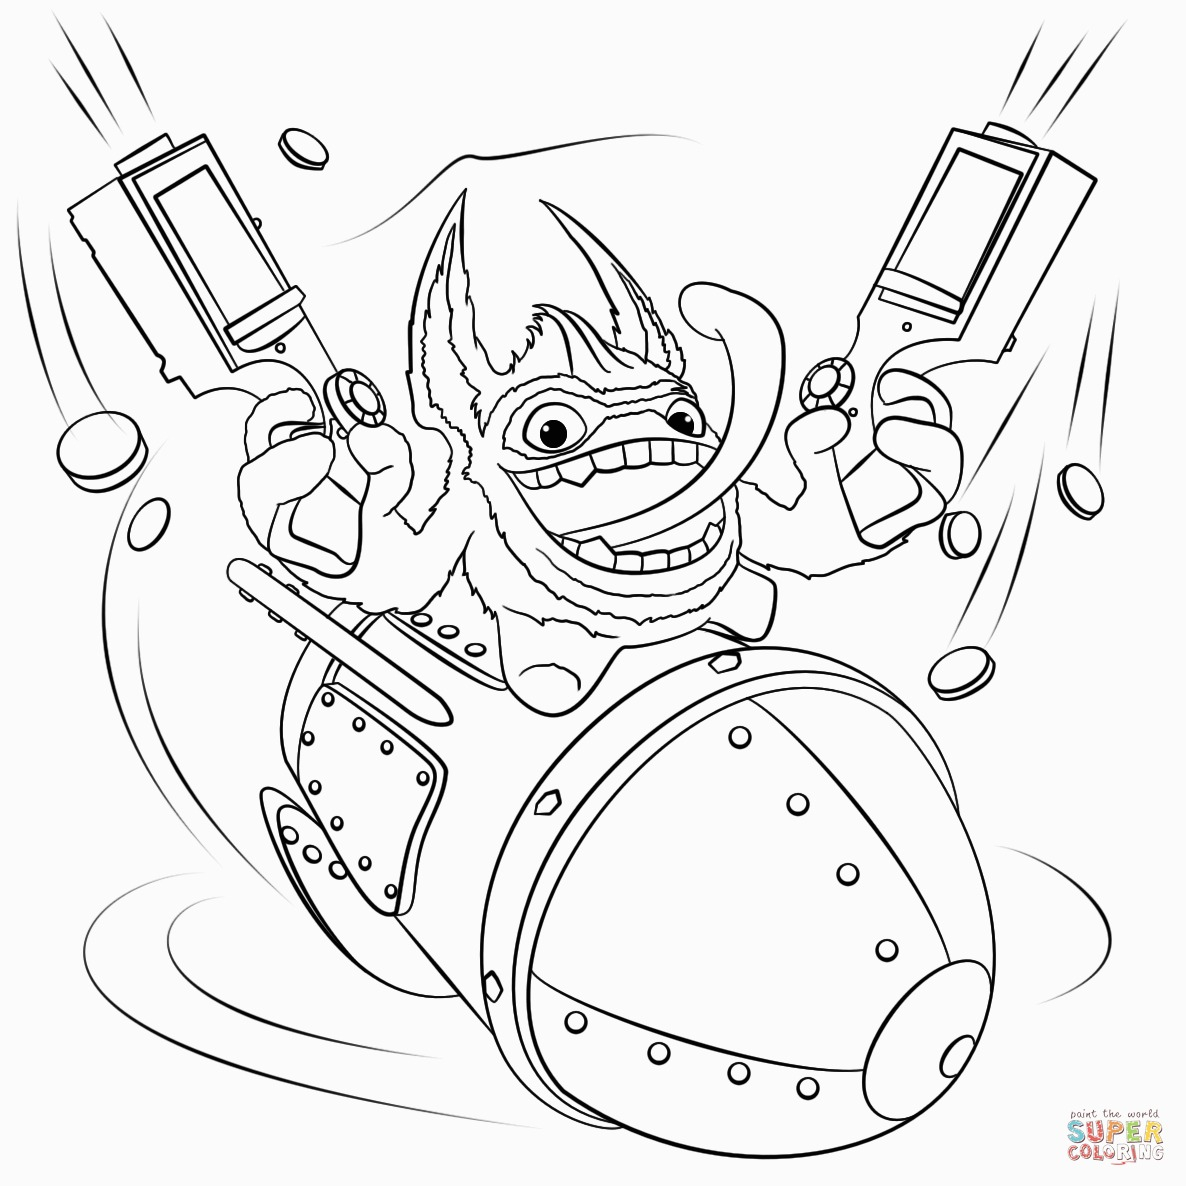 Printable Coloring Pages Skylanders Skylanders Trigger Happy Coloring Page For Printable Coloring Pages